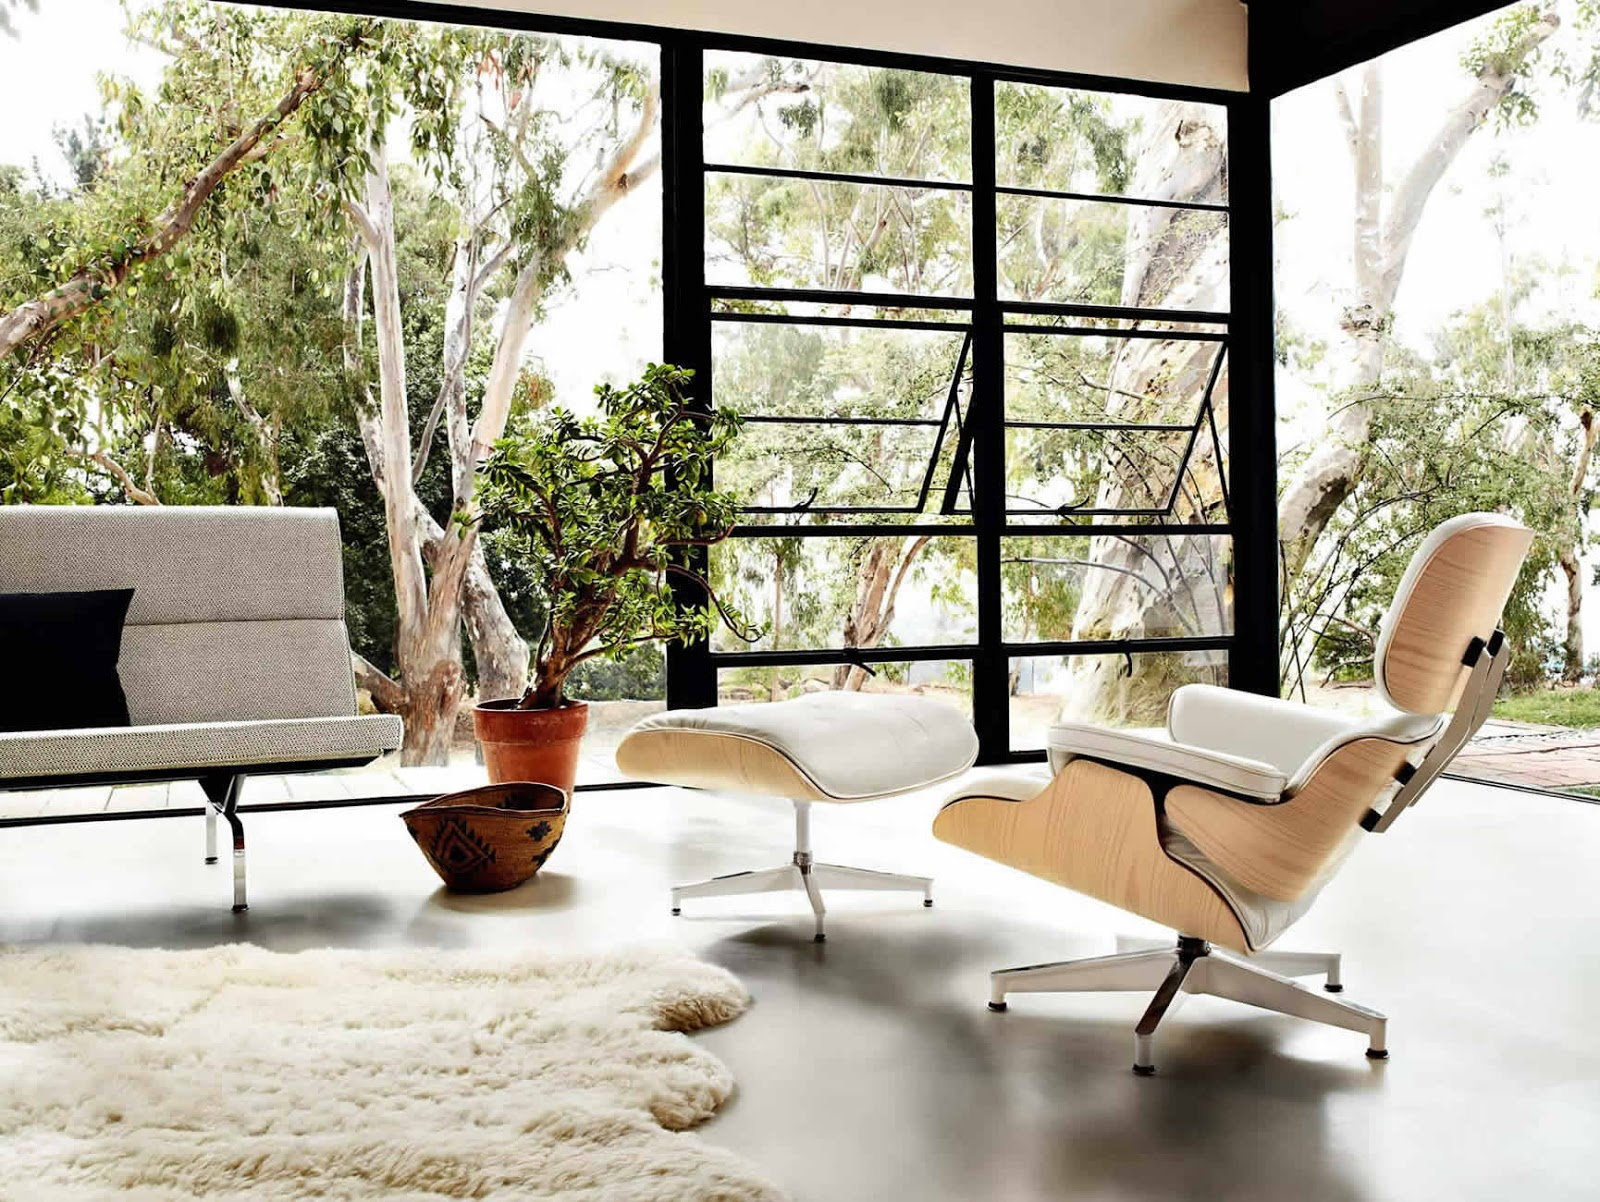 Most Comfortable Chairs For Living Room Most Comfortable Living Room Chair The 19 Most Comfortable